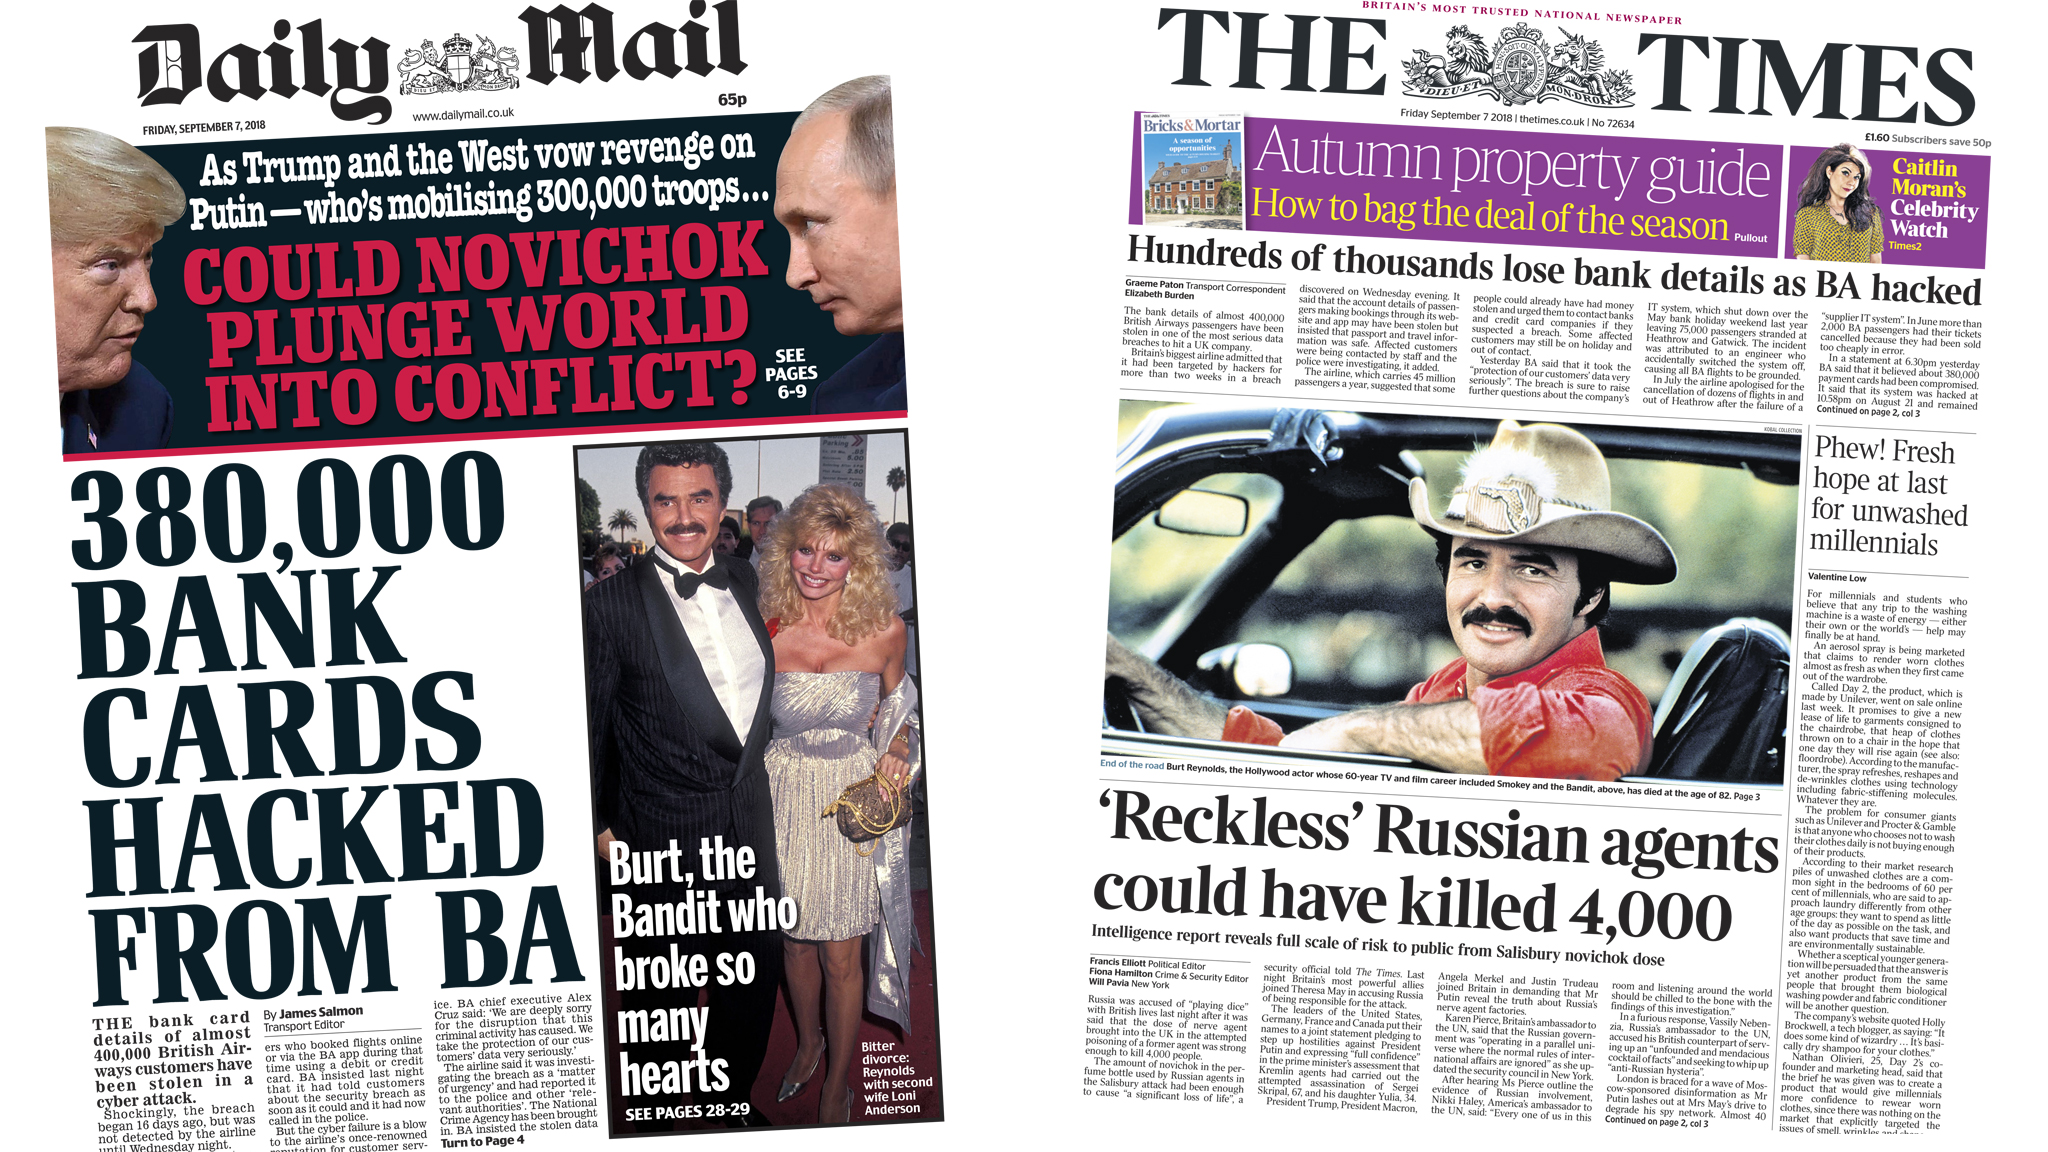 Daily Mail and Times front page - 07/09/18